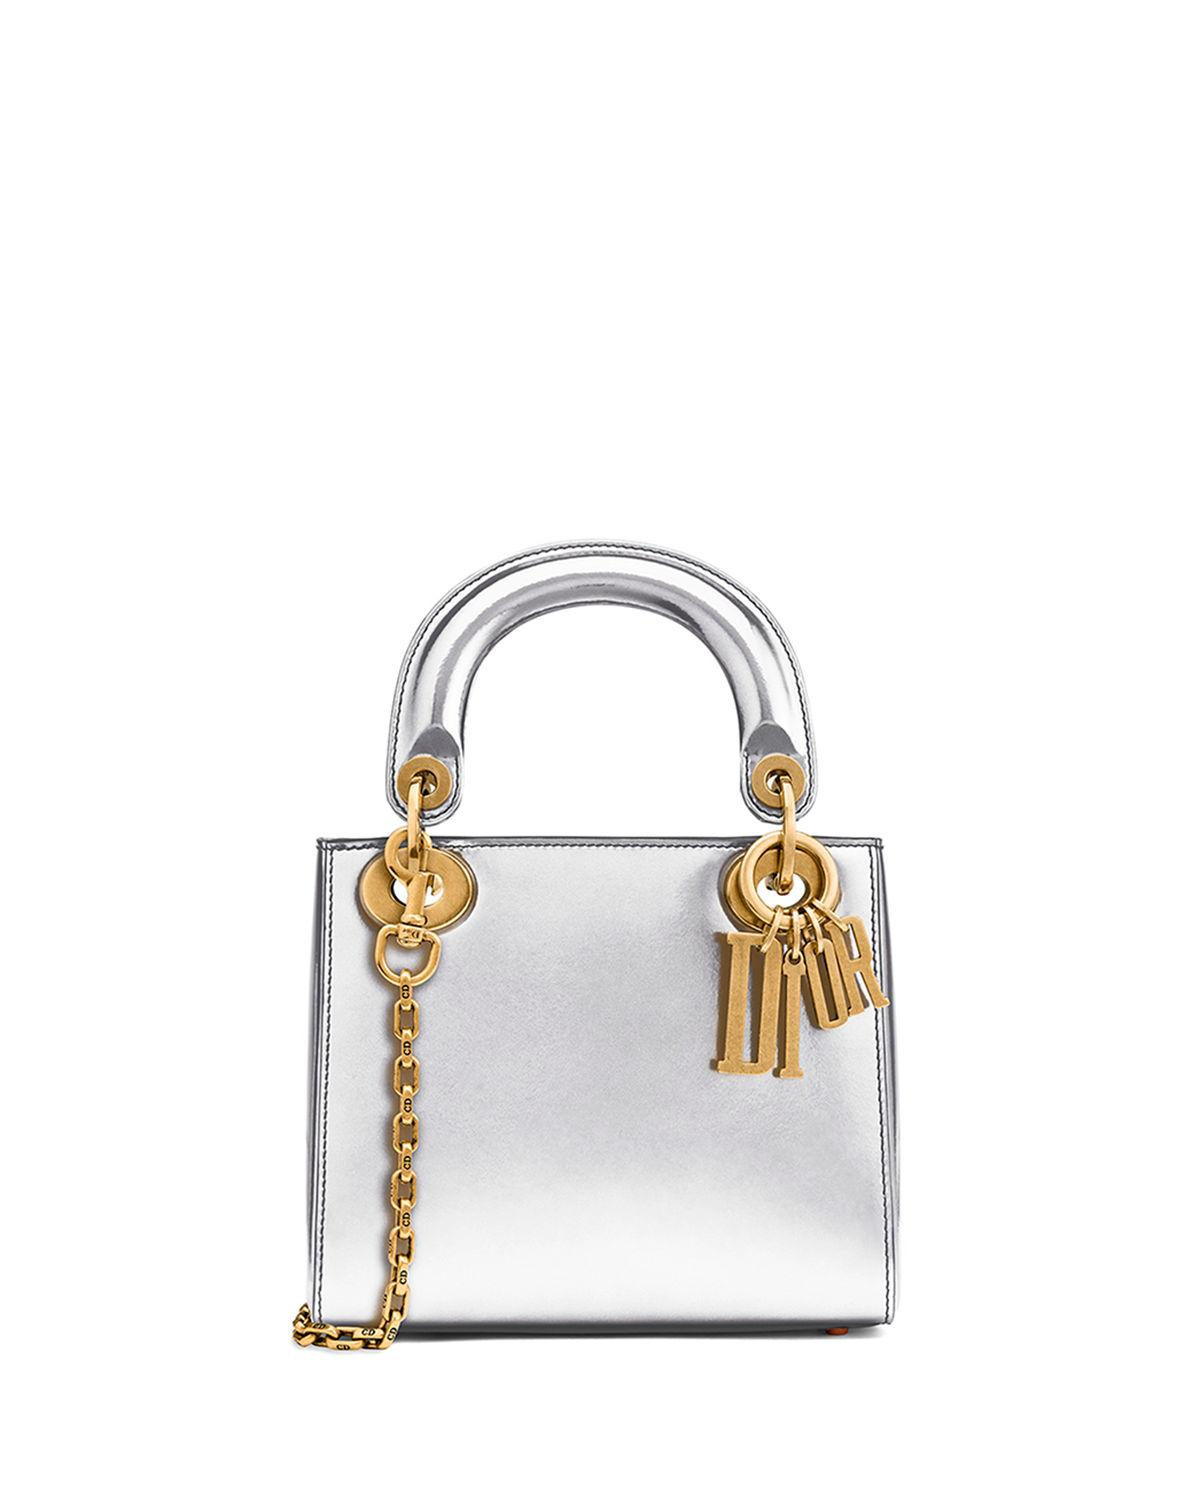 81d033810b1a Dior Mini Lady Bag With Metallic Calfskin And Chain In Gray Pattern ...